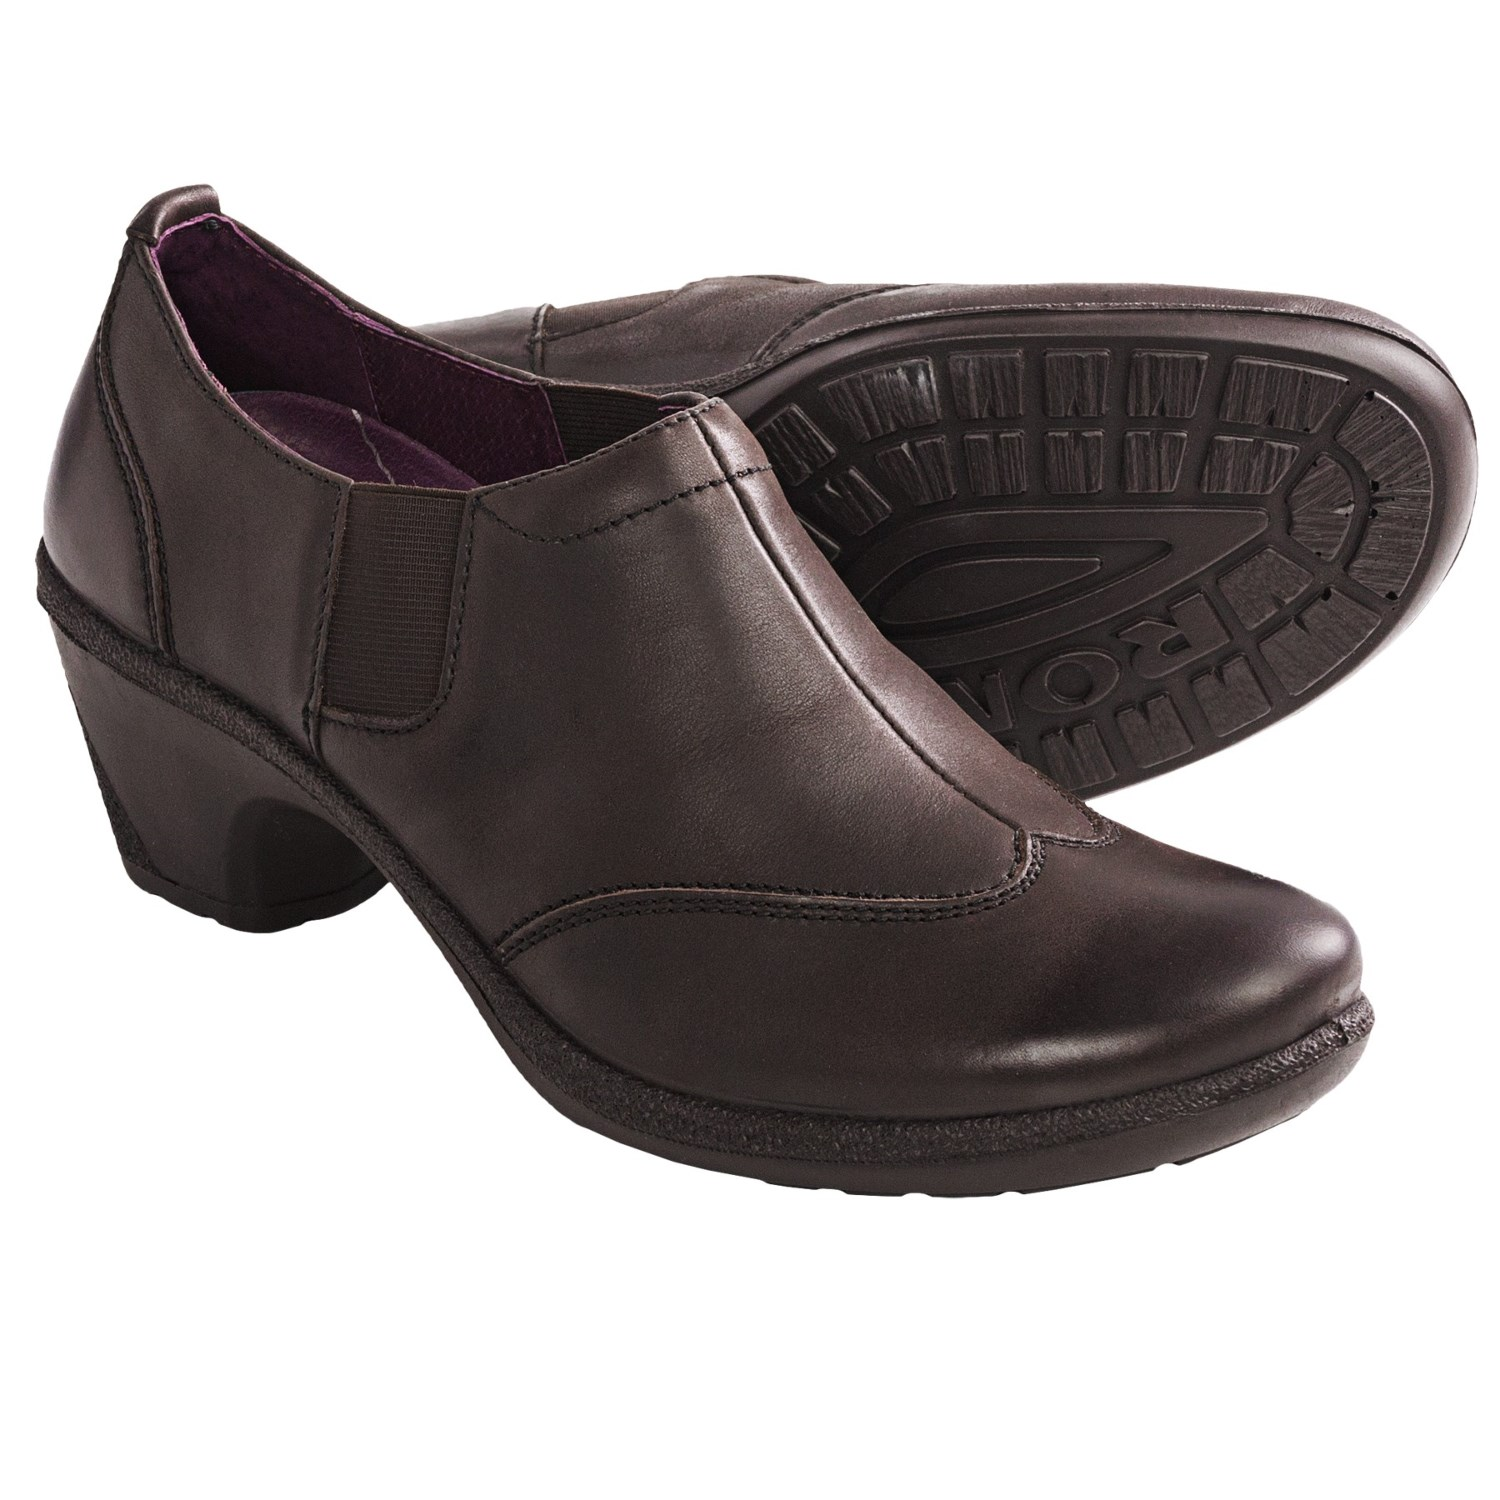 Romika Lyon 07 Shoes - Leather, Slip-Ons (For Women) in Dark Brown